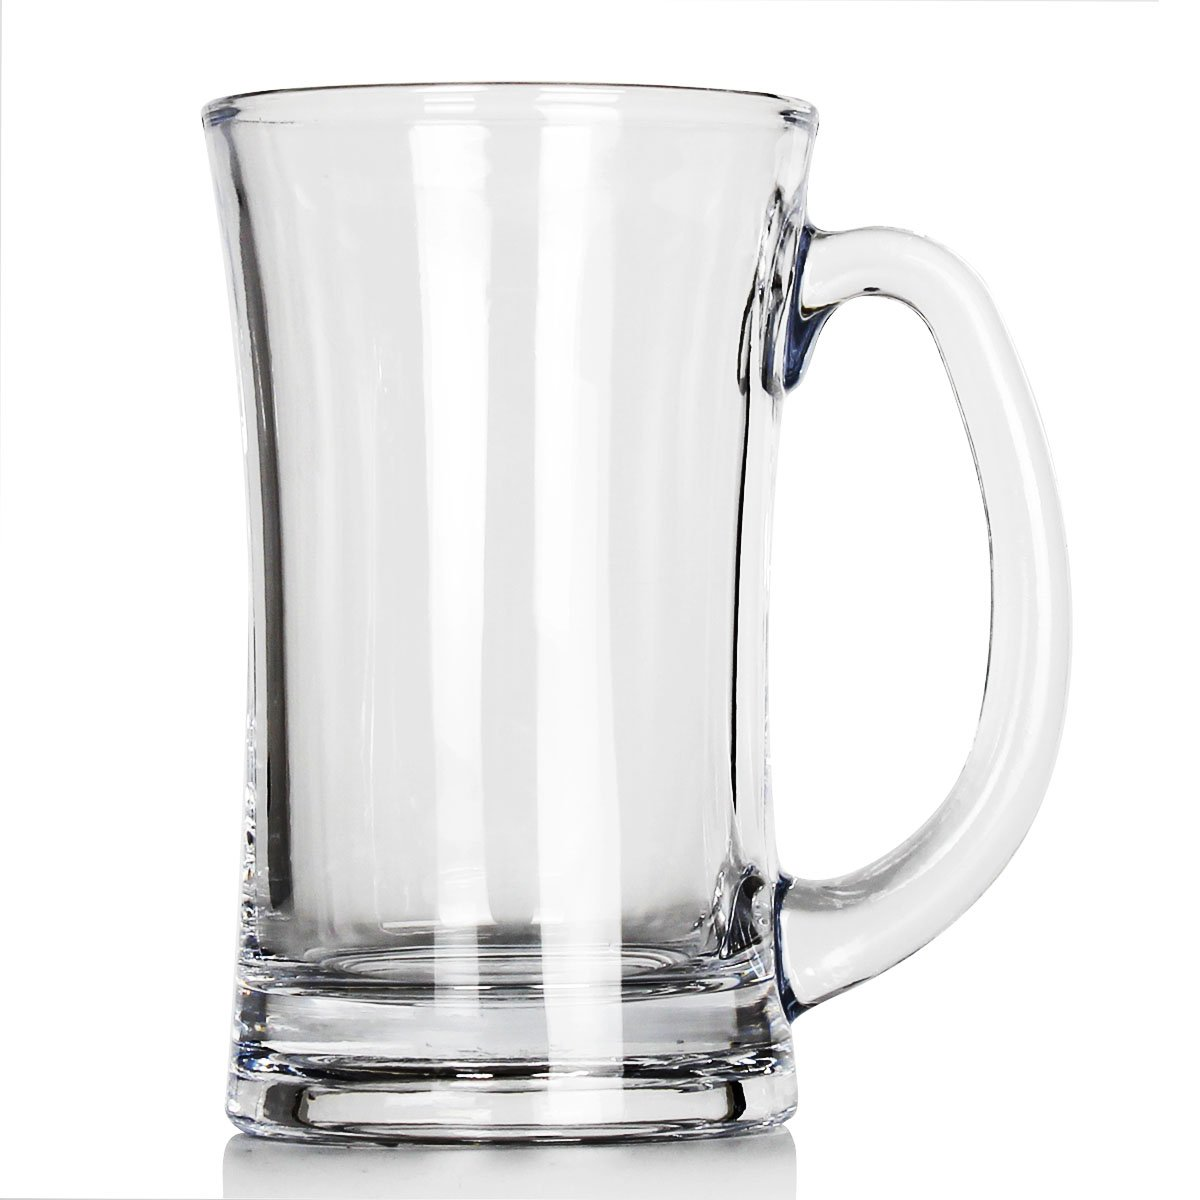 Momugs 12 OZ Clear Glass Beer Stein Mug for Coffee Milk Tea Hot or Cold Juice Beverages